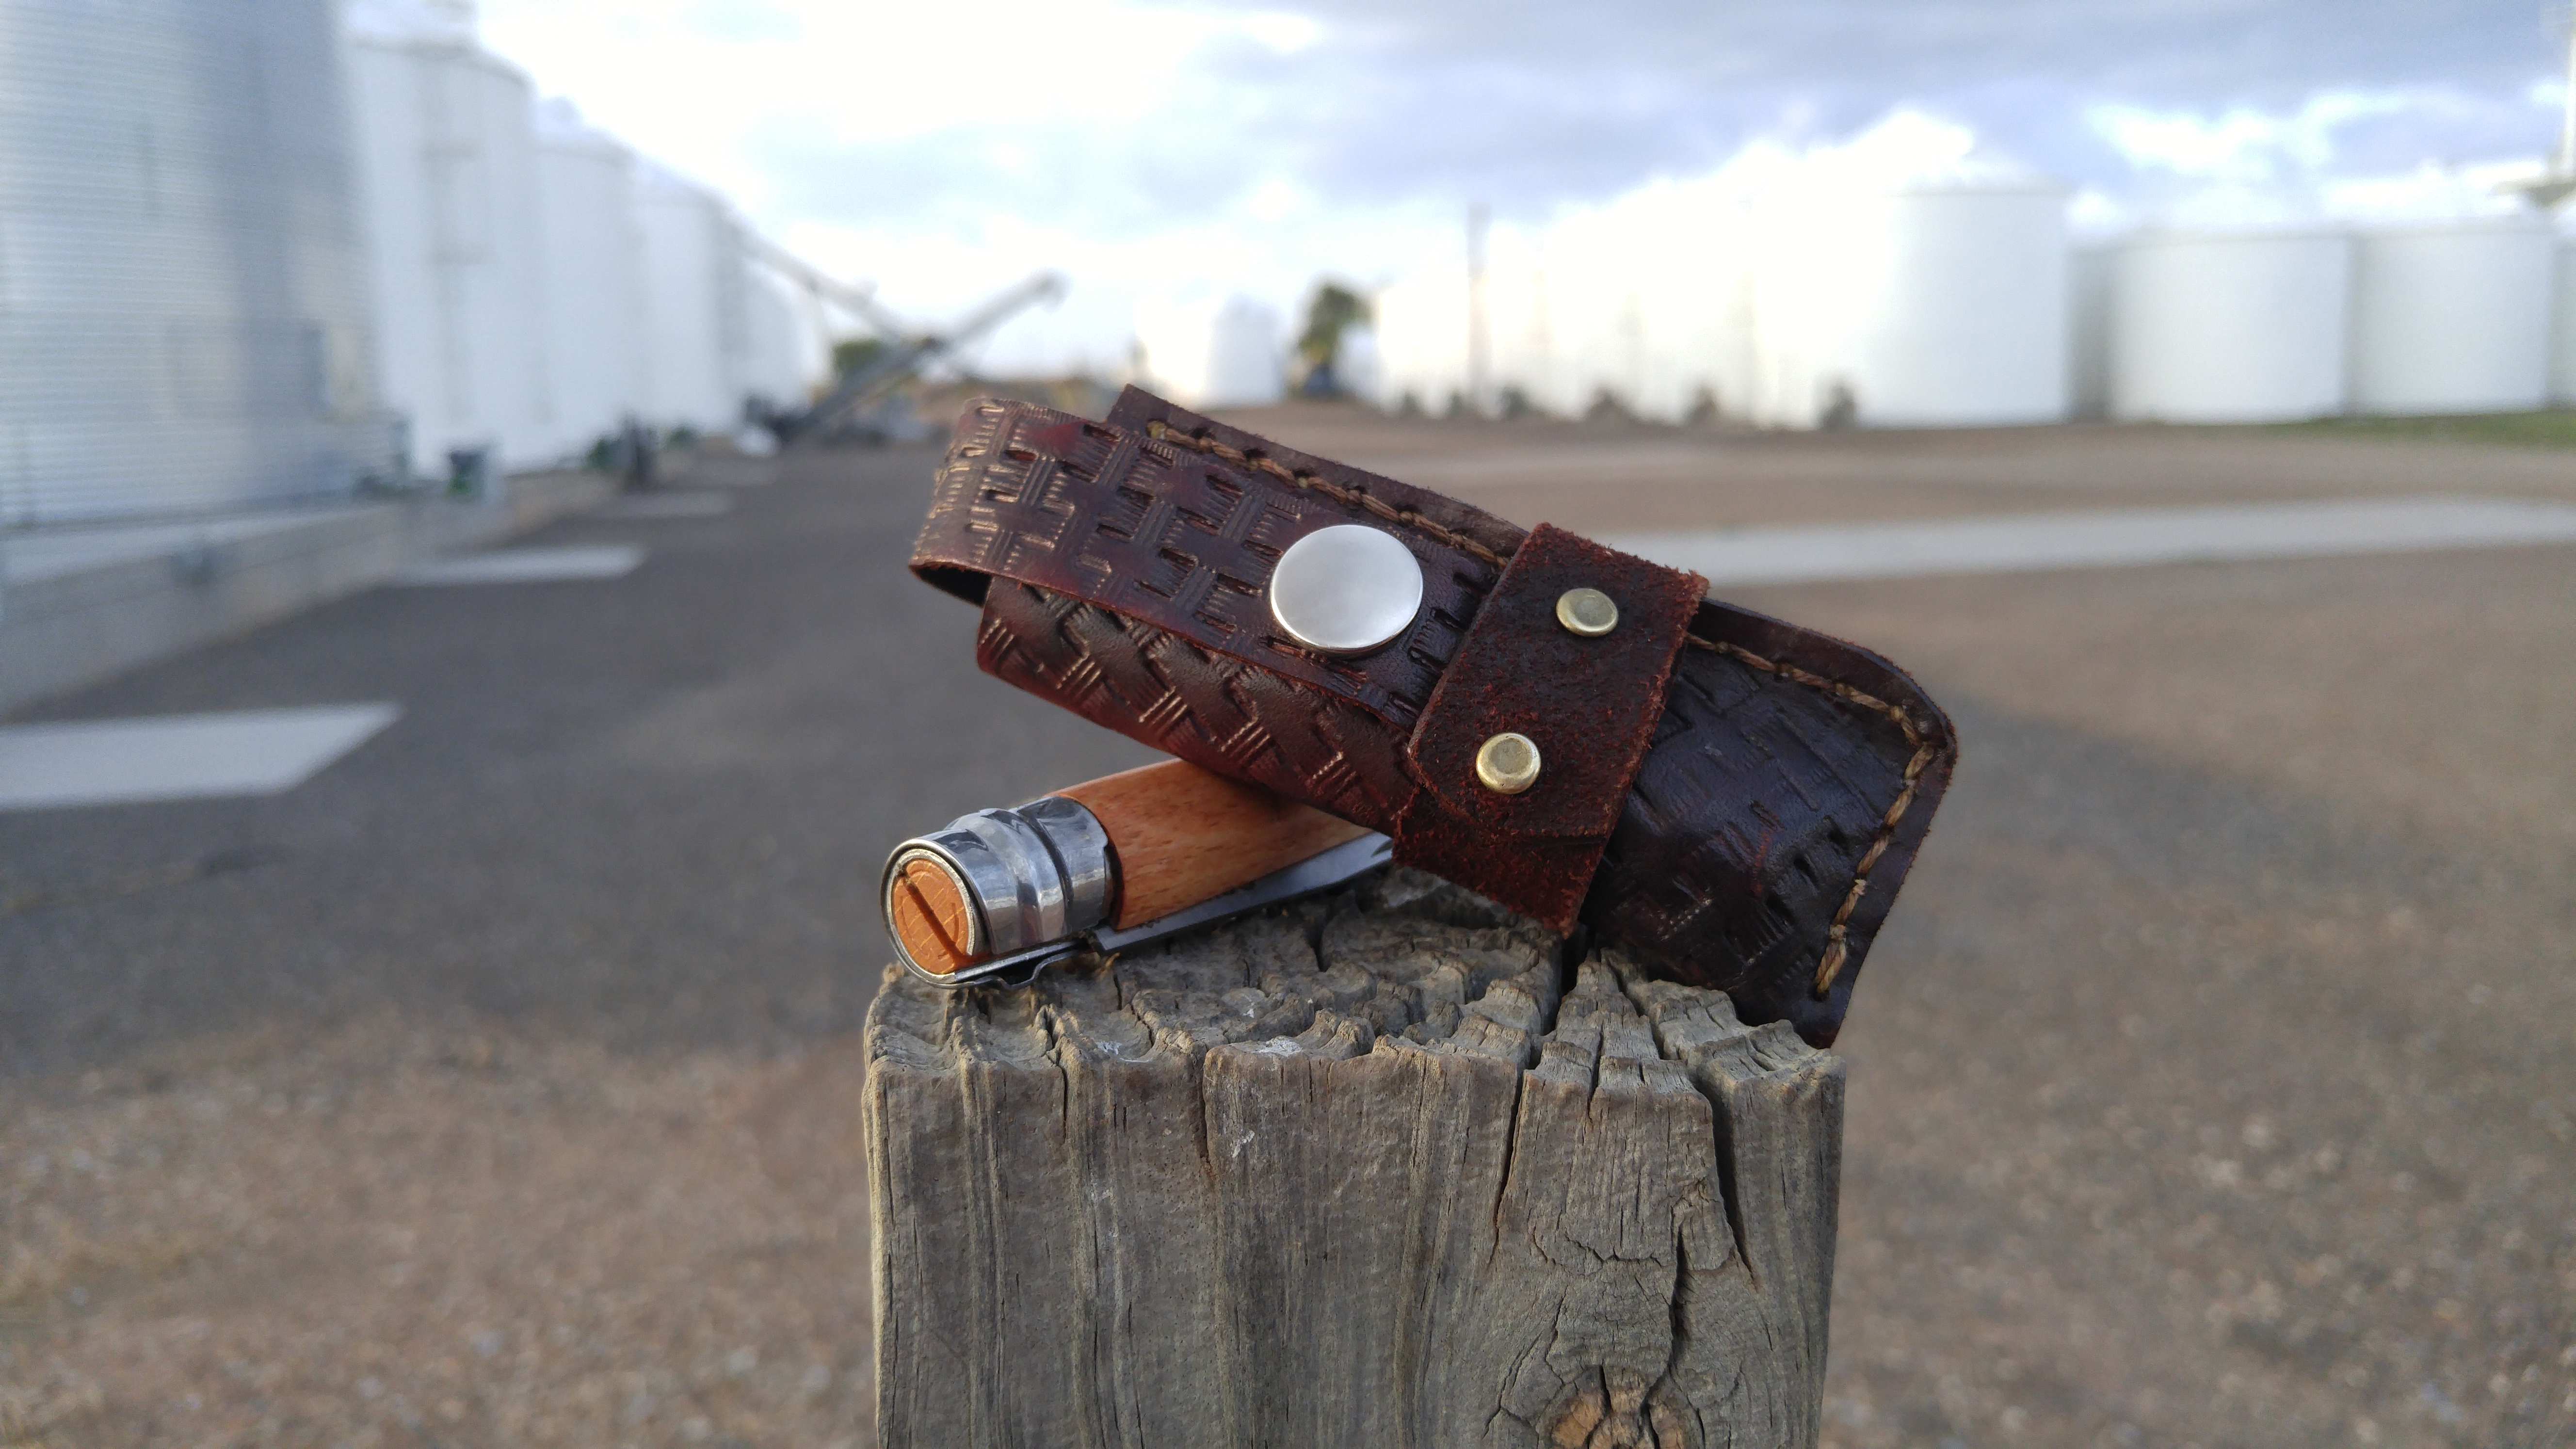 Making simple leather sheath: fold-over western holster style.